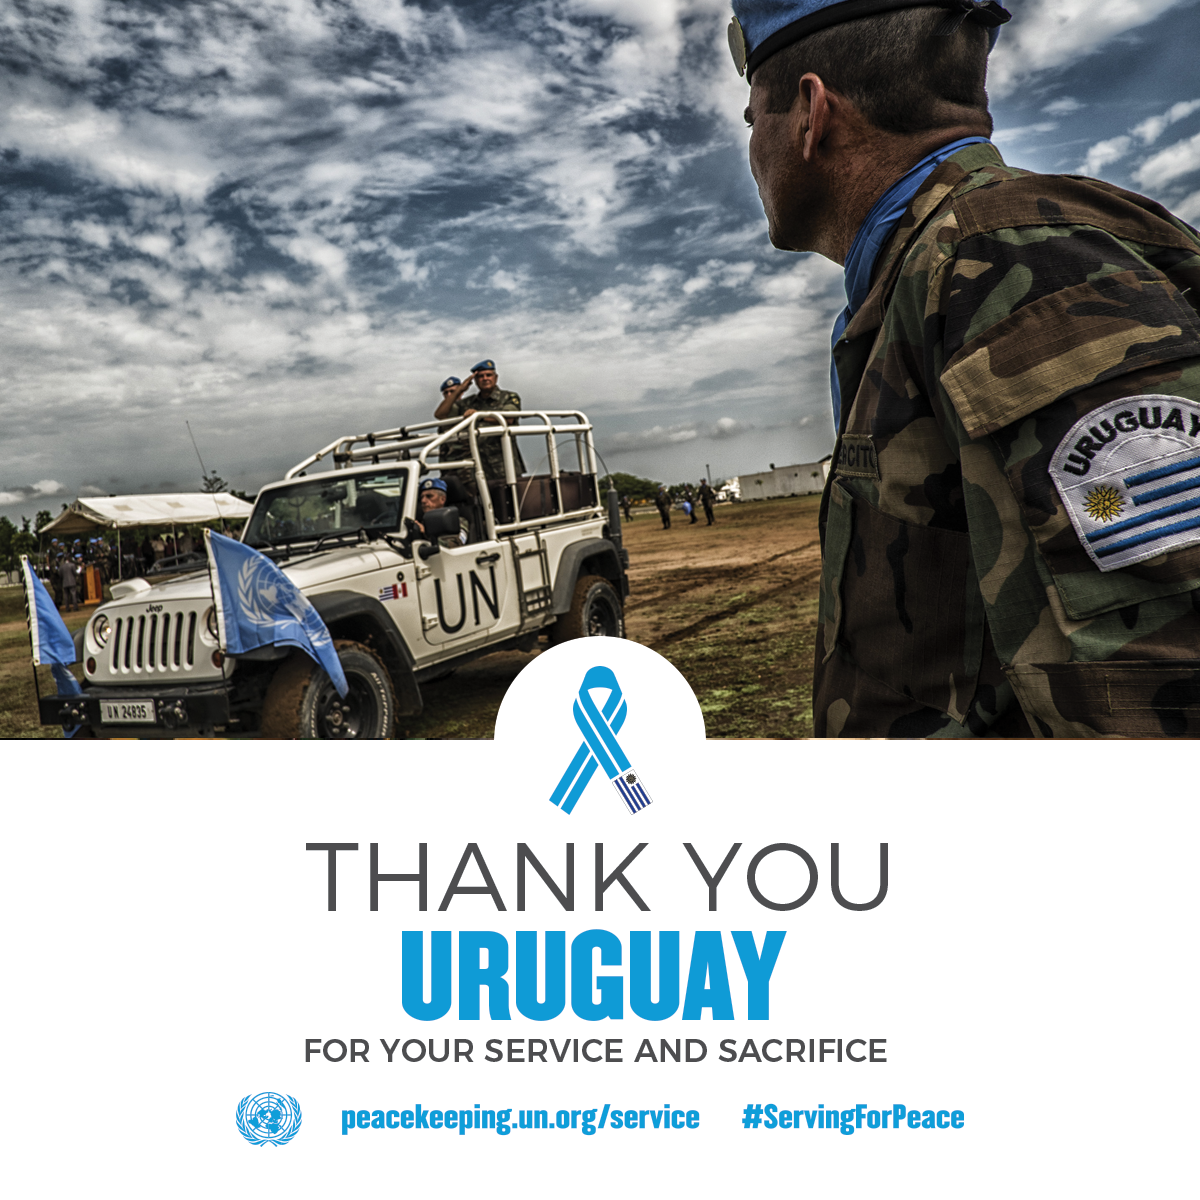 Thanks Uruguay for your service and sacrifice